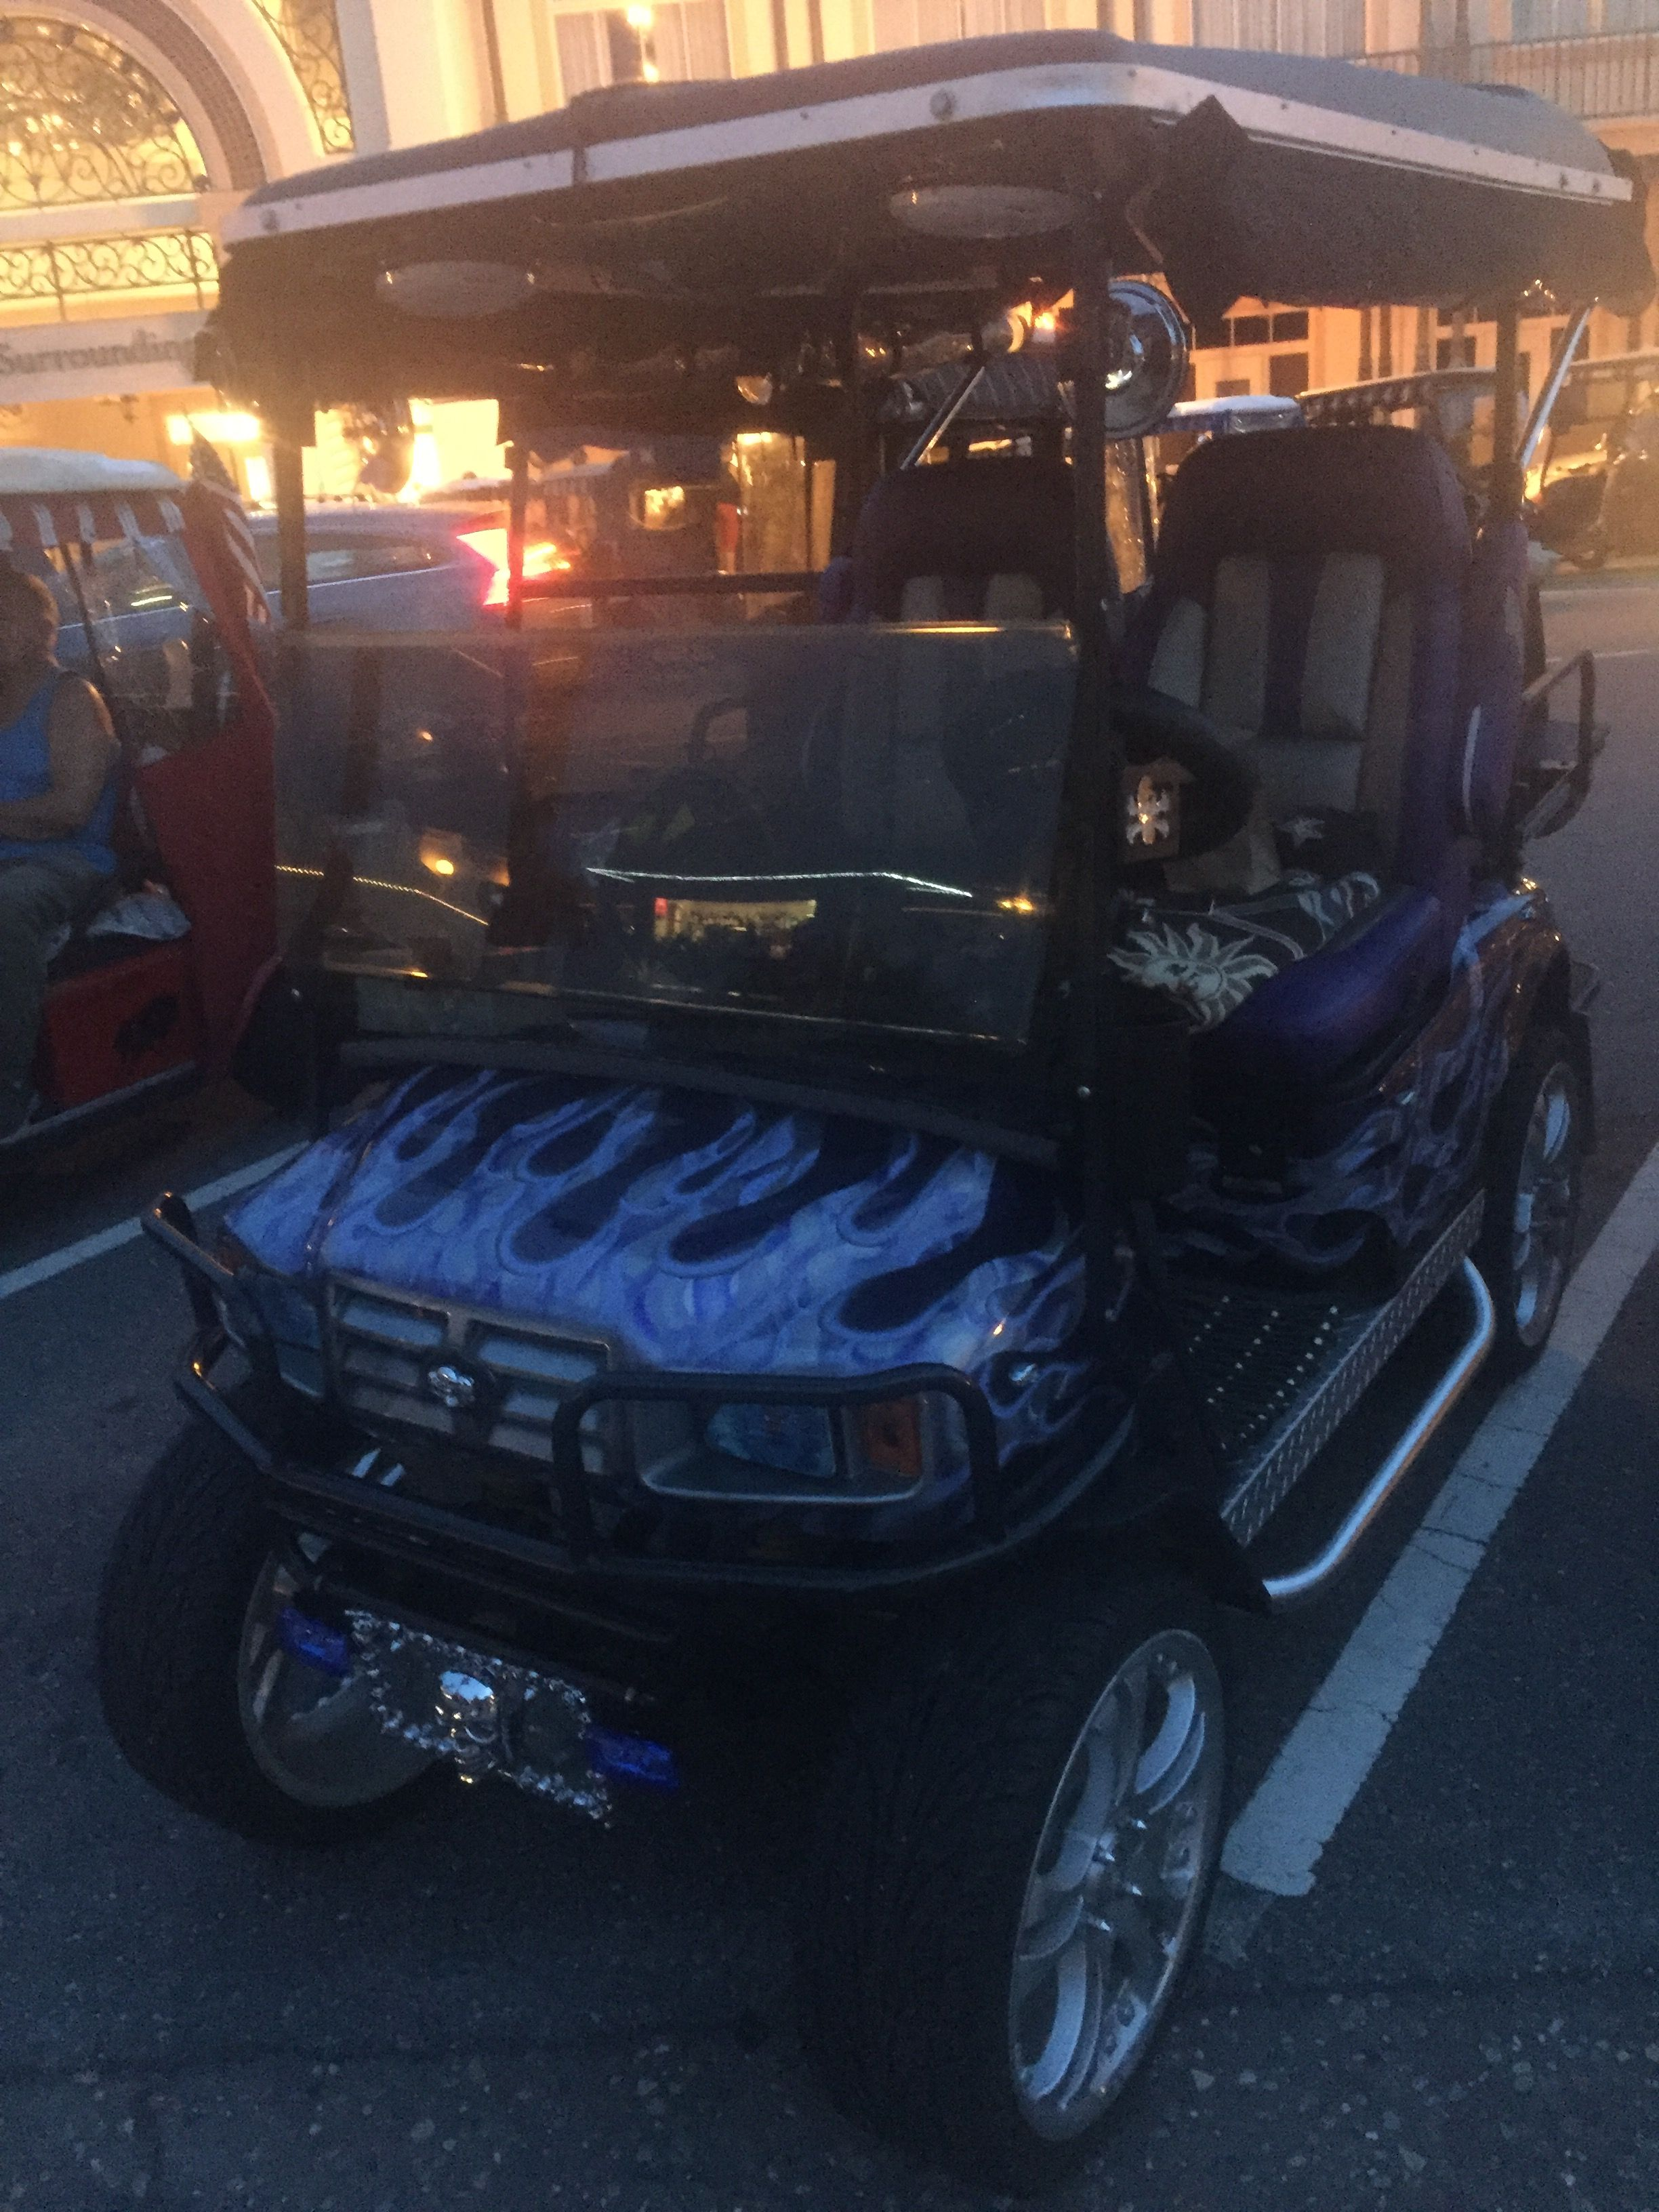 Pin by Bruce Lefebvre on Golf Carts Golf carts, Golf